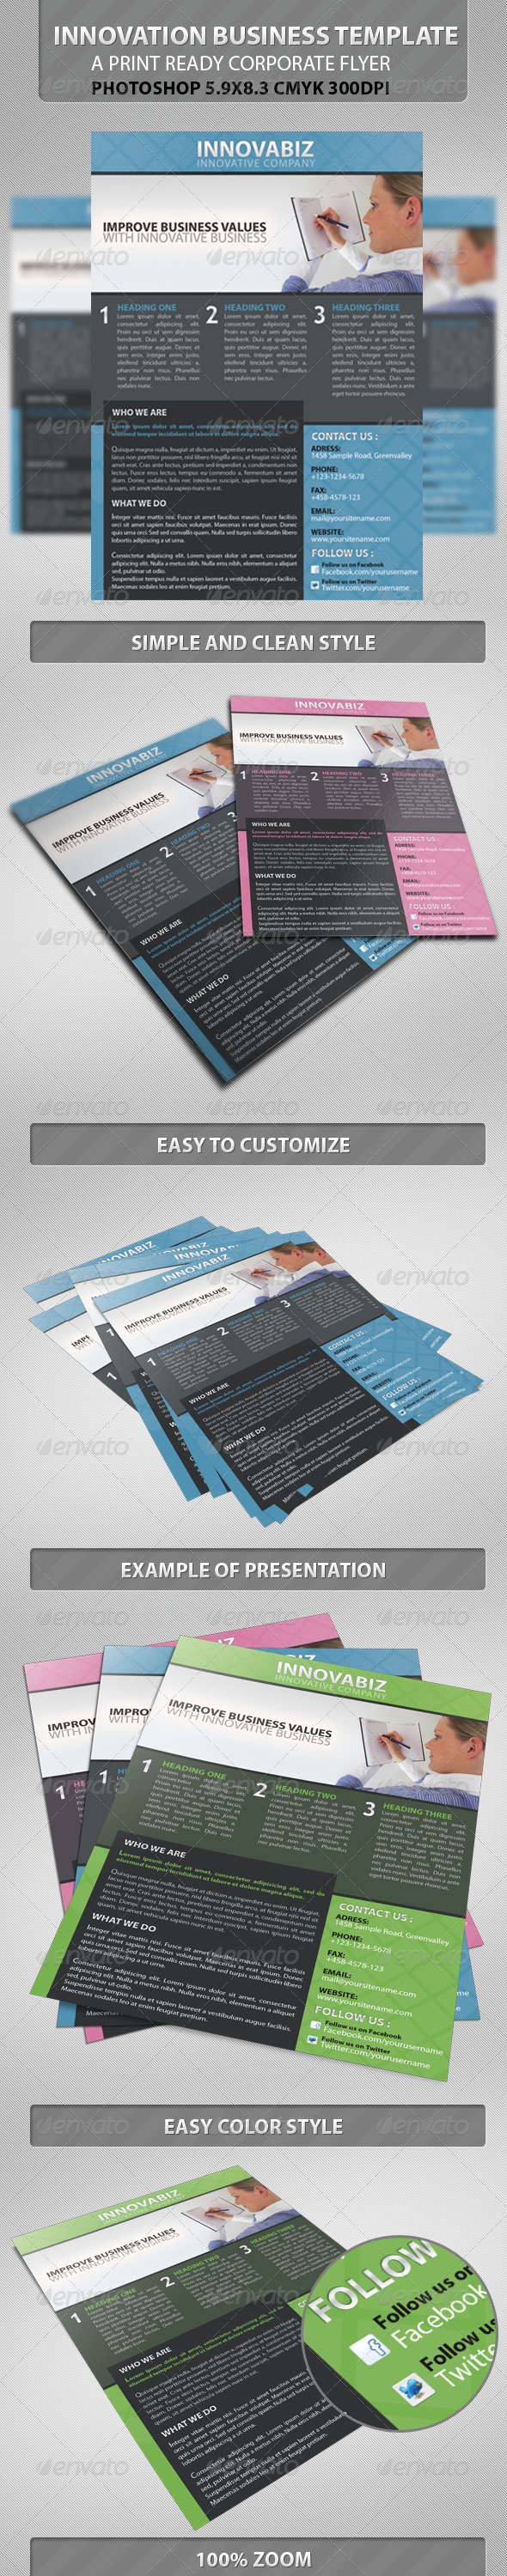 innovation Corporate PSD Flyer Template - Corporate Flyers